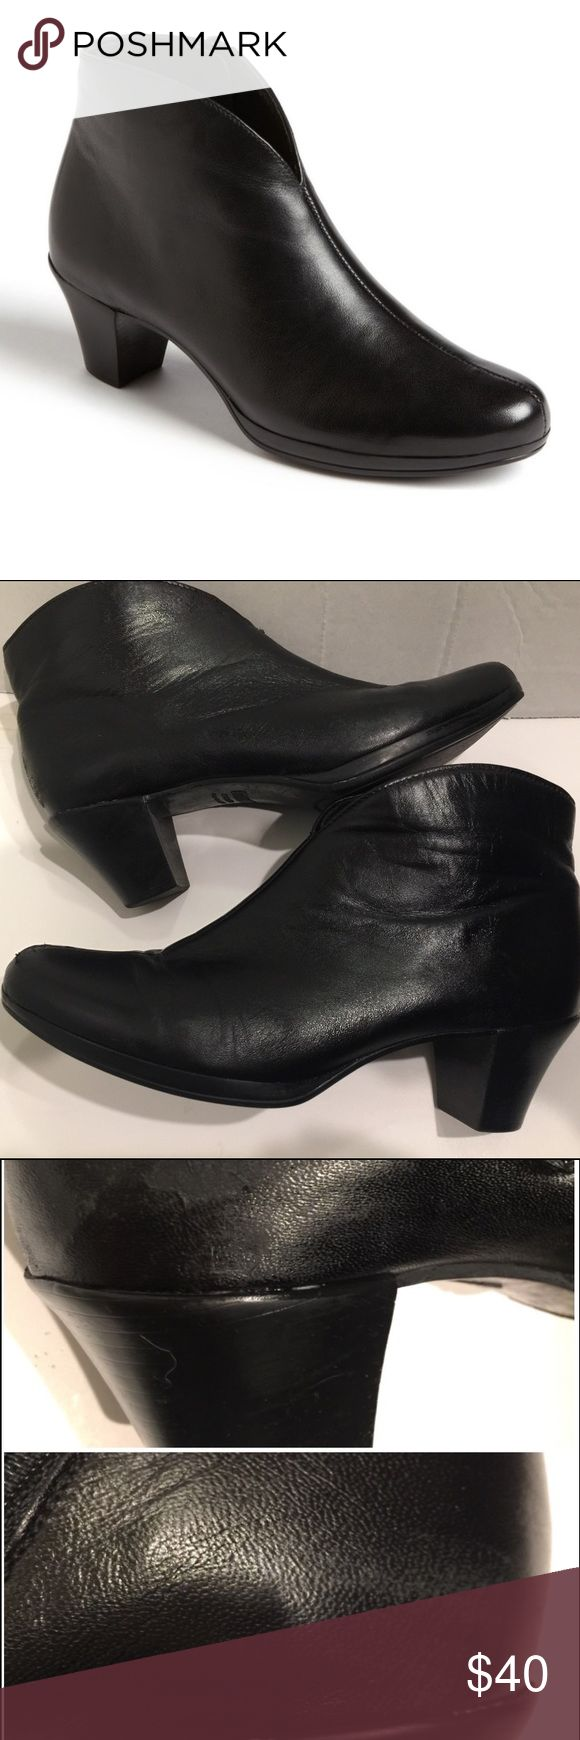 """🔵Munro black leather ankle booties. Style """"Robyn"""" 🔵2 for $30 SALE! Looking for a comfortable bootie? This is it! Butter soft black leather ankle boot with 1.5 inch heel. will set off skinny jeans or leggings beautifully. Removable footbed. signs of wear, marks&scuffs/rubbing toe and ankle areas. 1st pic is stock, others are of actual boots. Pls ask for additional pics, price reflects used condition. Currently selling $225…"""